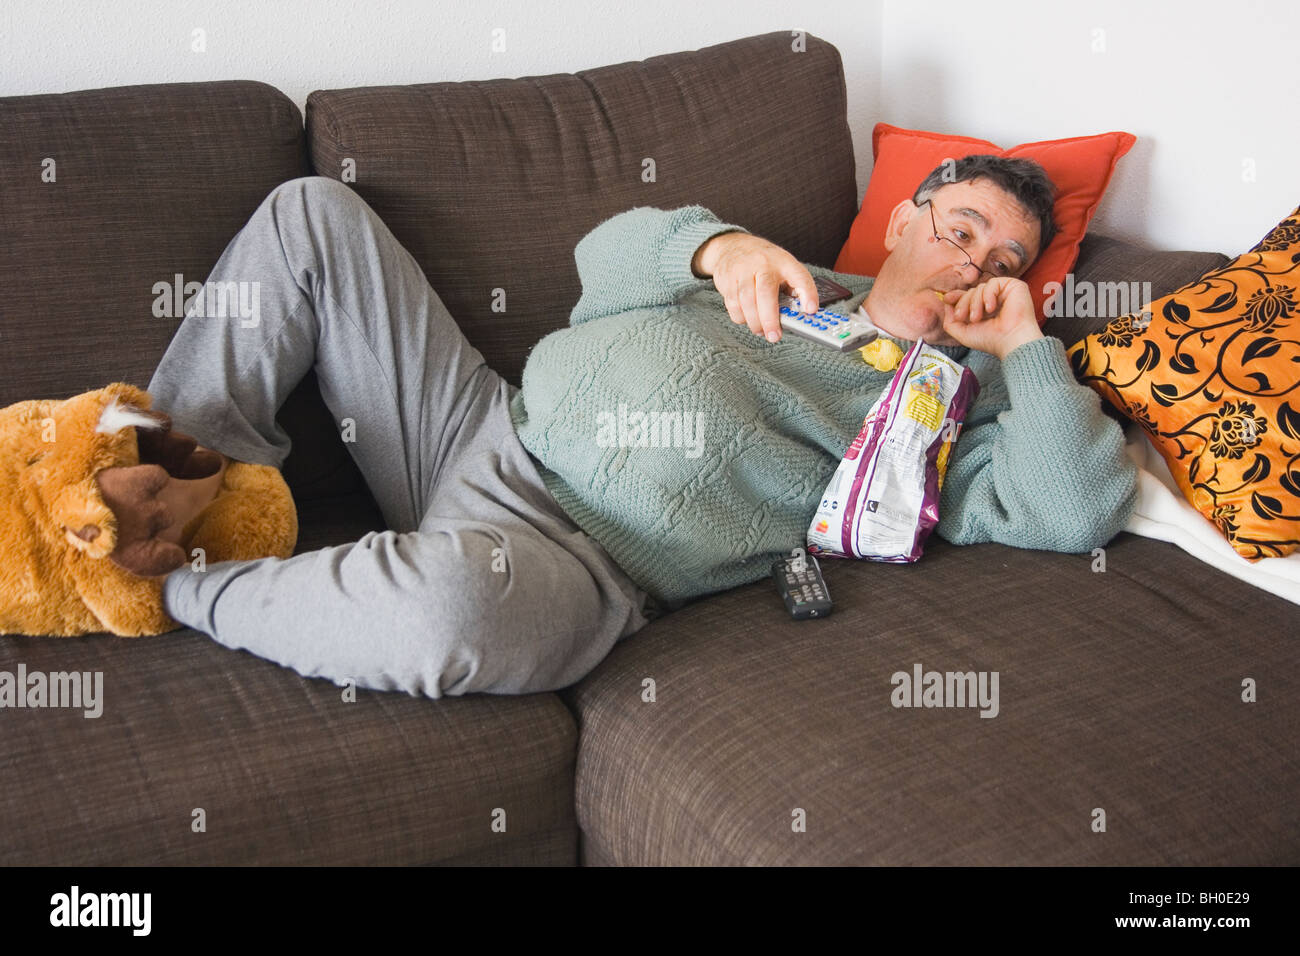 [Image: couch-potato-BH0E29.jpg]